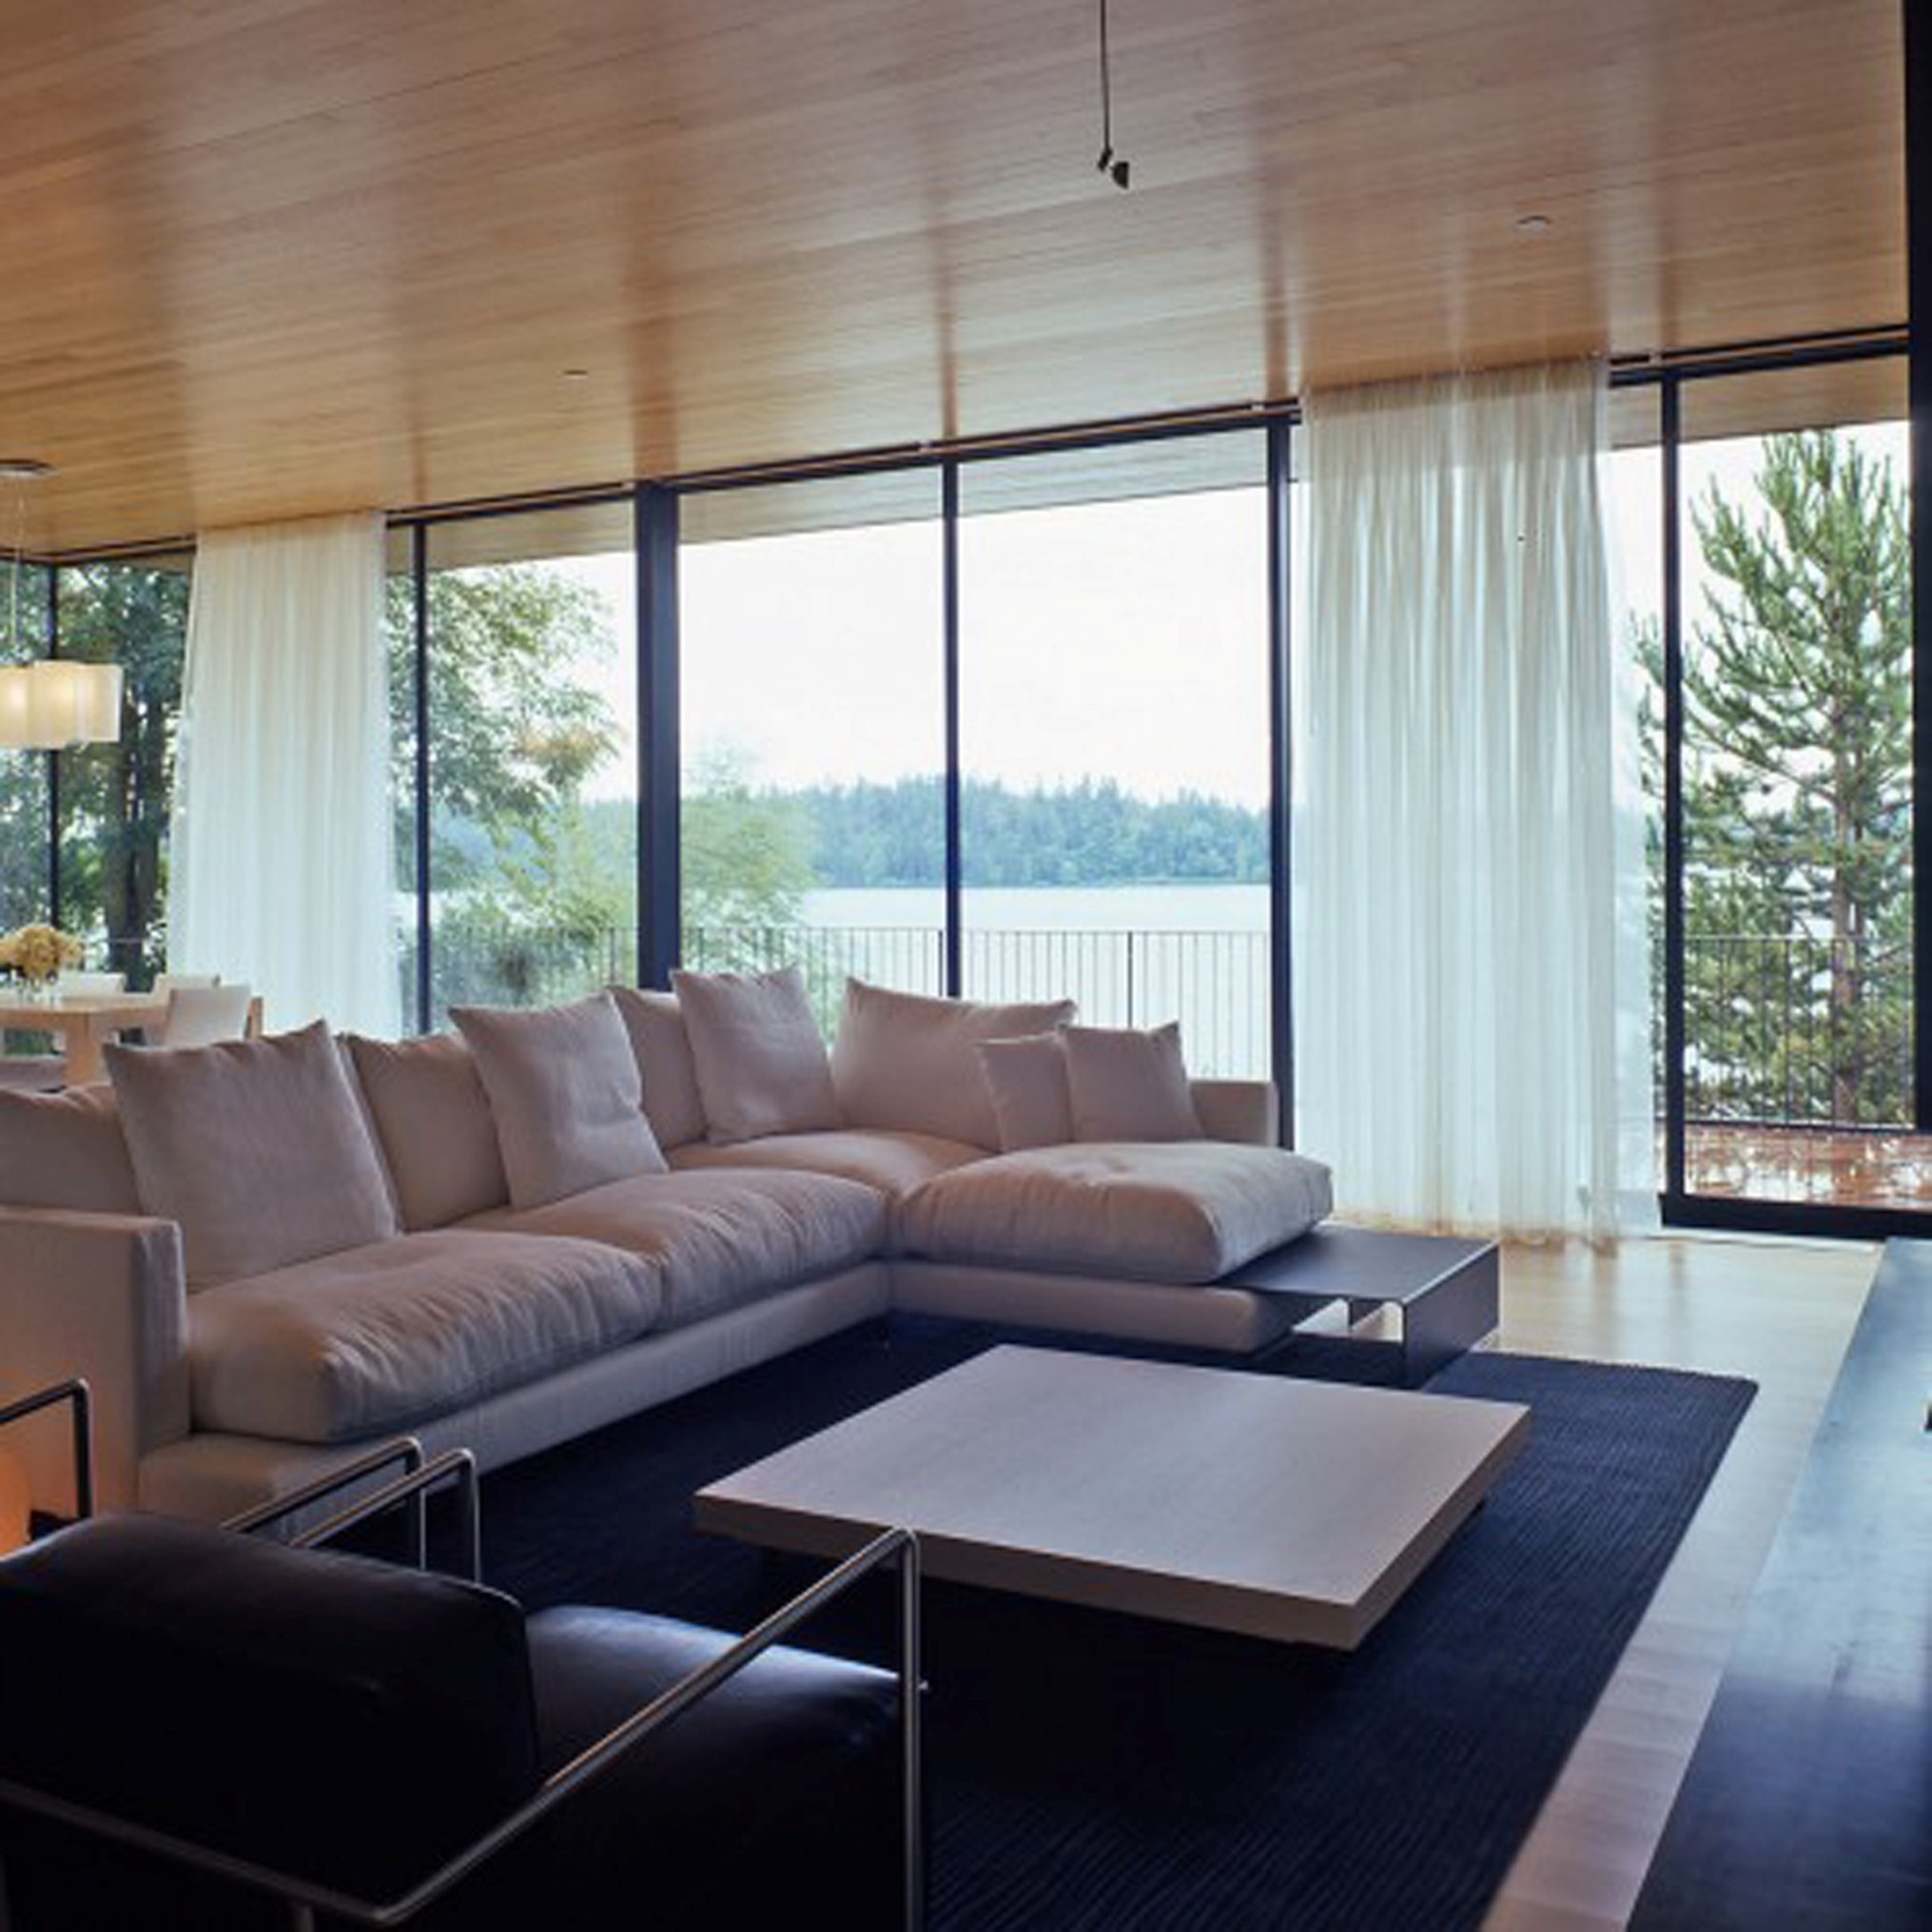 Modern Living Room With Spacious Modern White Sofa Also Licious Window Glass Design (Image 27 of 30)